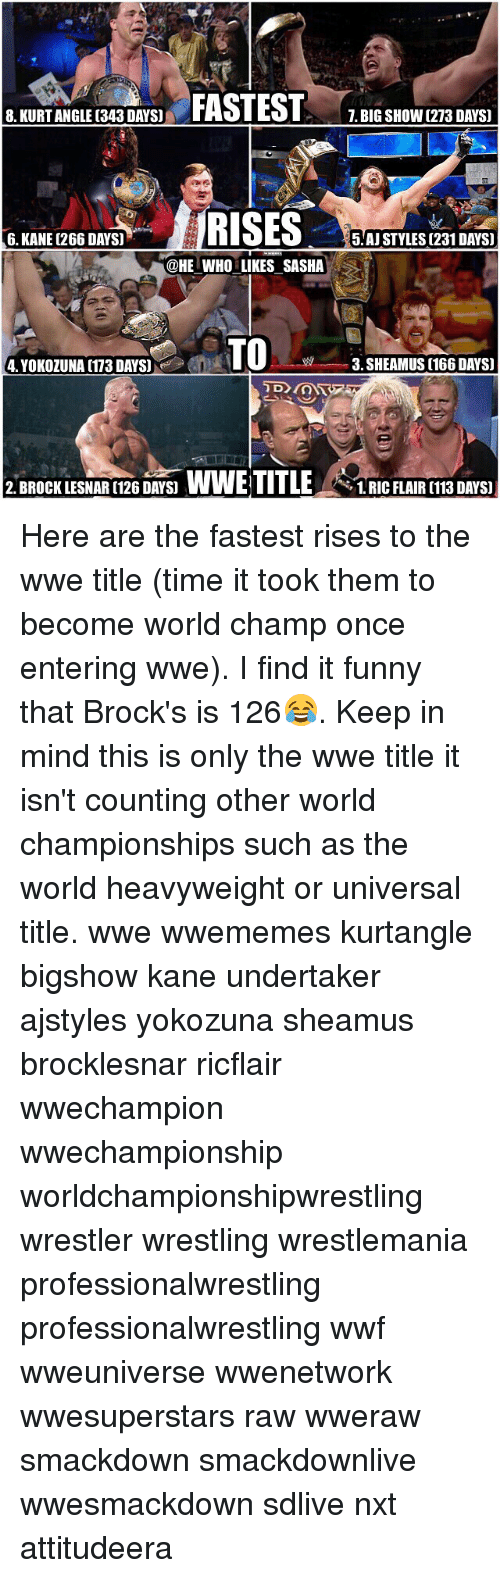 Funny, Memes, and Wrestling: FASTEST  8. KURTANGLE (343 DAYSU  RISES  6. KANE (266 DAYS)  5 AJ STYLES(231 DAYS)  @HE WHO LIKES SASHA  TO  3. SHEAMUS (166 DAYS)  2. BROCK LESNAR (126 DAYS WWE TITLE  t, 1.RIC FLAIR (113 DAYS) Here are the fastest rises to the wwe title (time it took them to become world champ once entering wwe). I find it funny that Brock's is 126😂. Keep in mind this is only the wwe title it isn't counting other world championships such as the world heavyweight or universal title. wwe wwememes kurtangle bigshow kane undertaker ajstyles yokozuna sheamus brocklesnar ricflair wwechampion wwechampionship worldchampionshipwrestling wrestler wrestling wrestlemania professionalwrestling professionalwrestling wwf wweuniverse wwenetwork wwesuperstars raw wweraw smackdown smackdownlive wwesmackdown sdlive nxt attitudeera